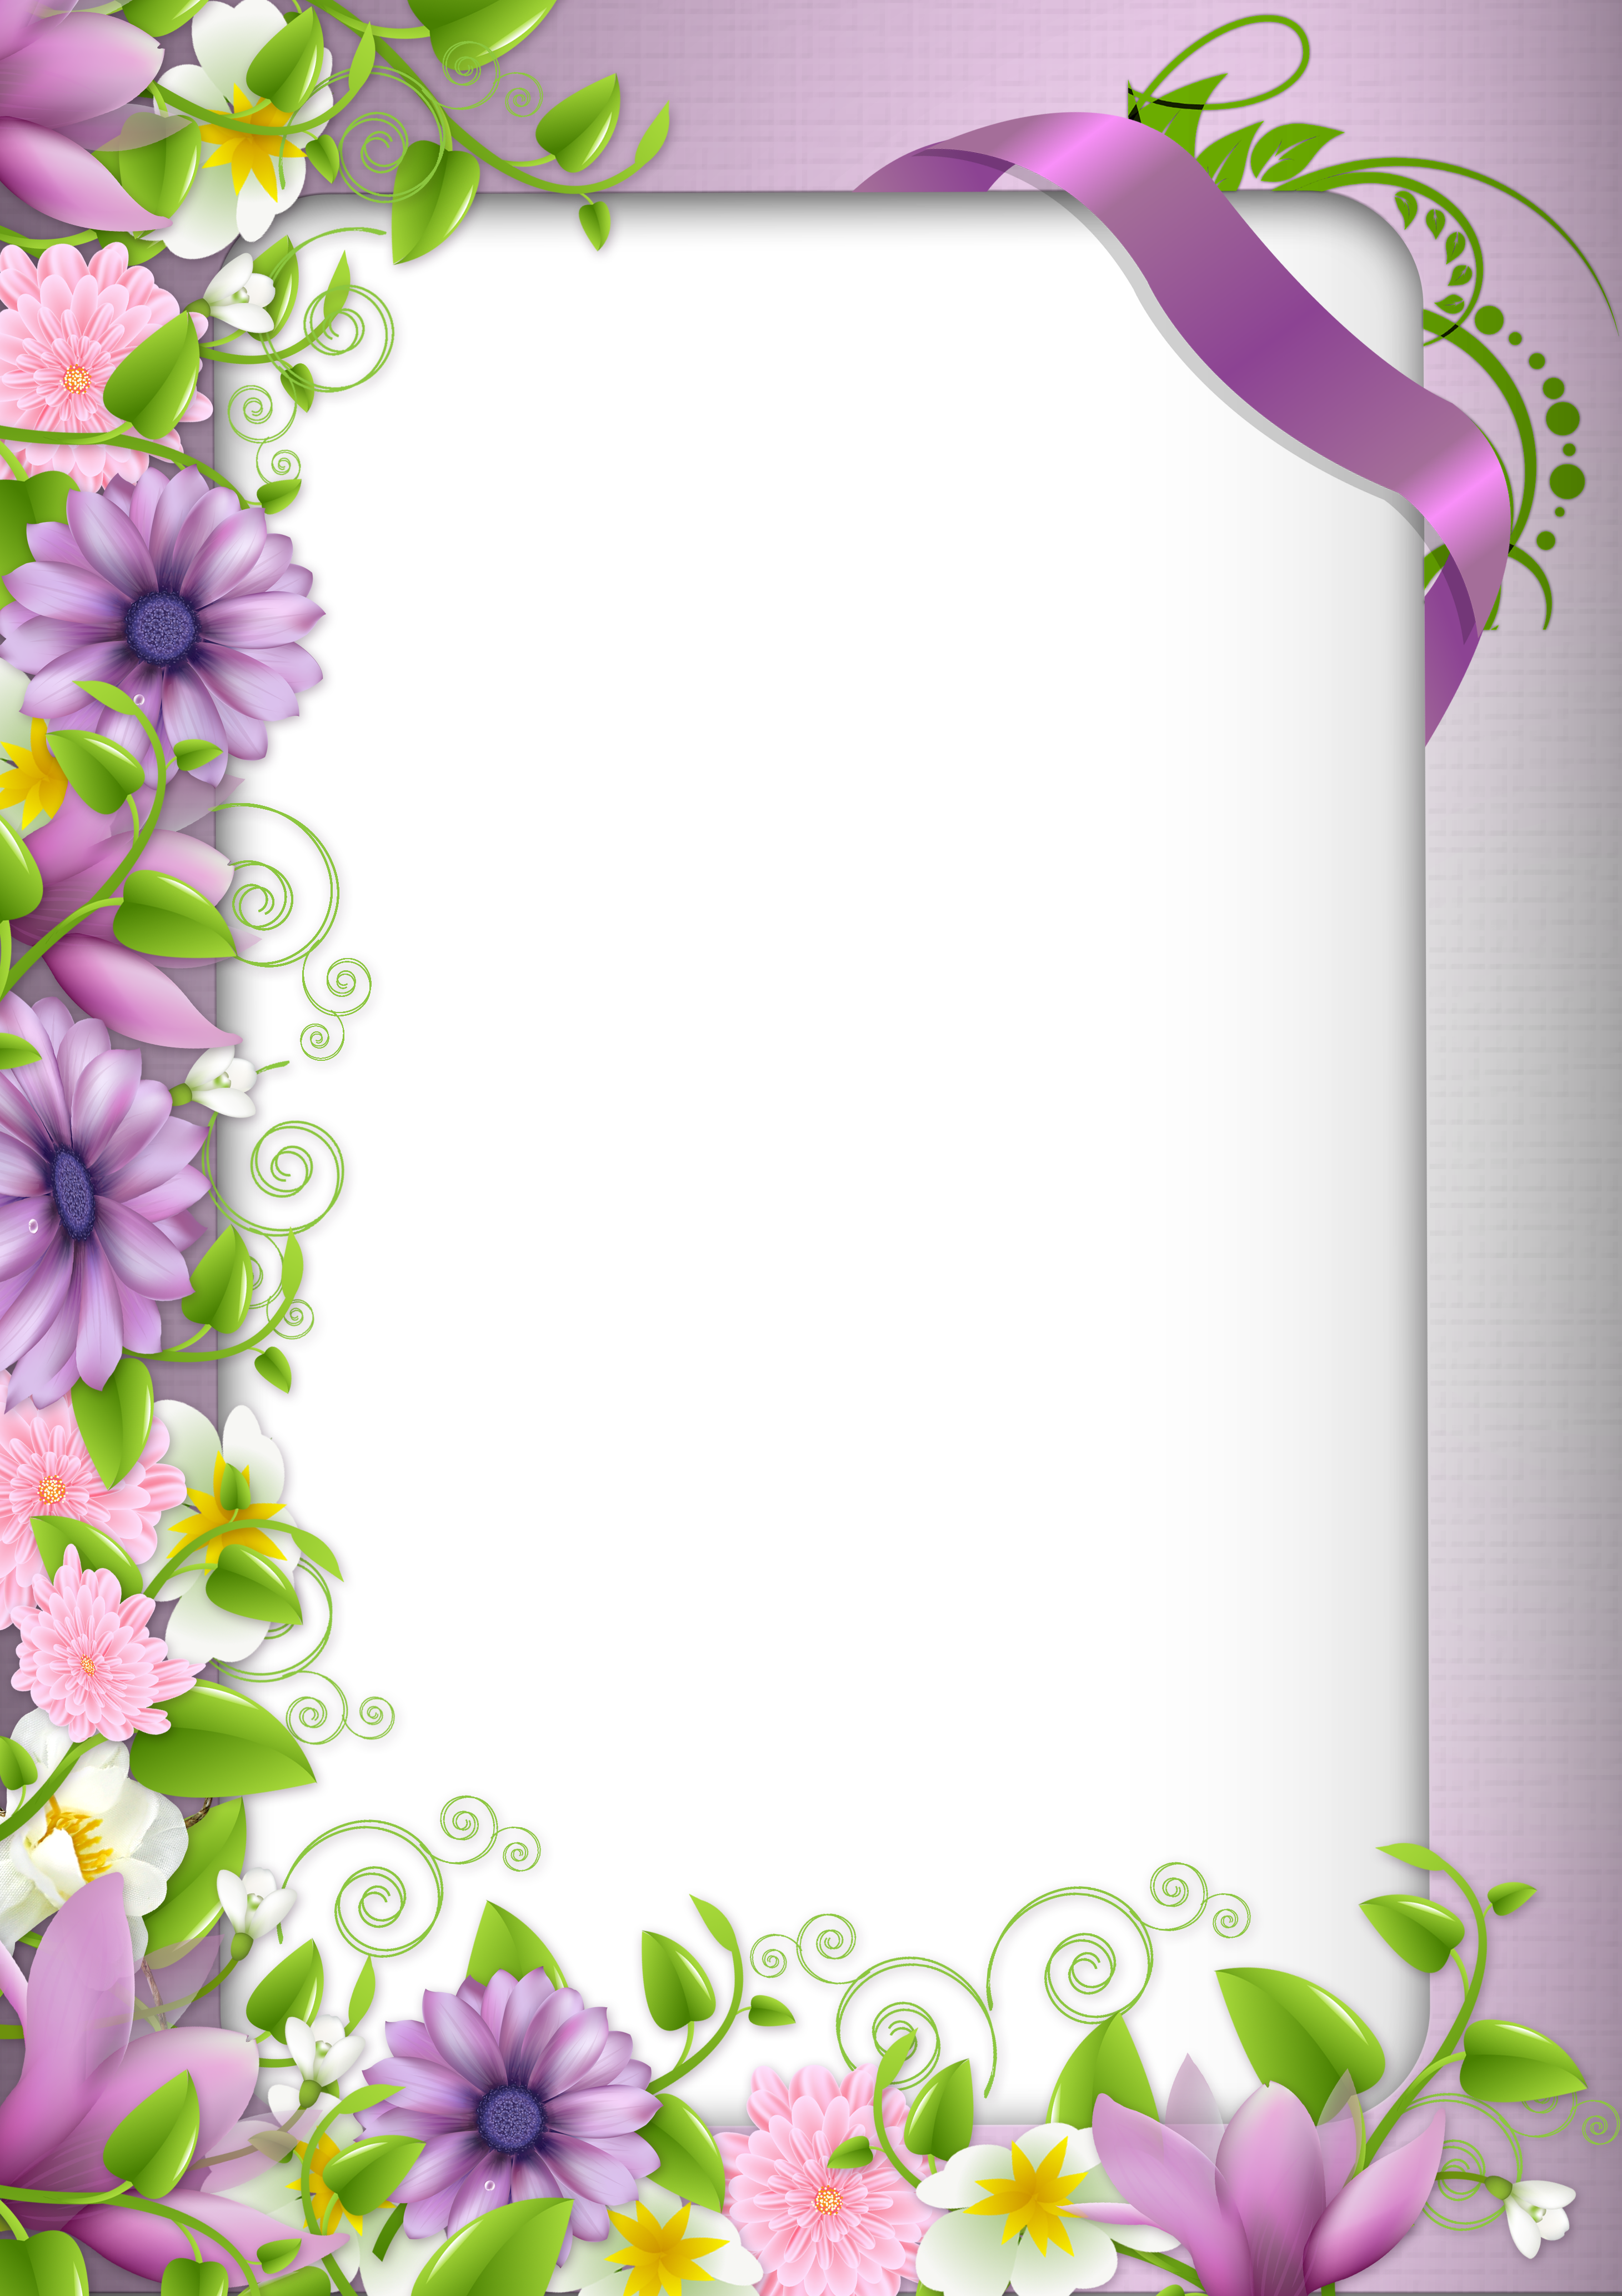 Flower with cross border clipart royalty free Transparent PNG Photo Frame with Purple Flowers | Bordered Paper ... royalty free